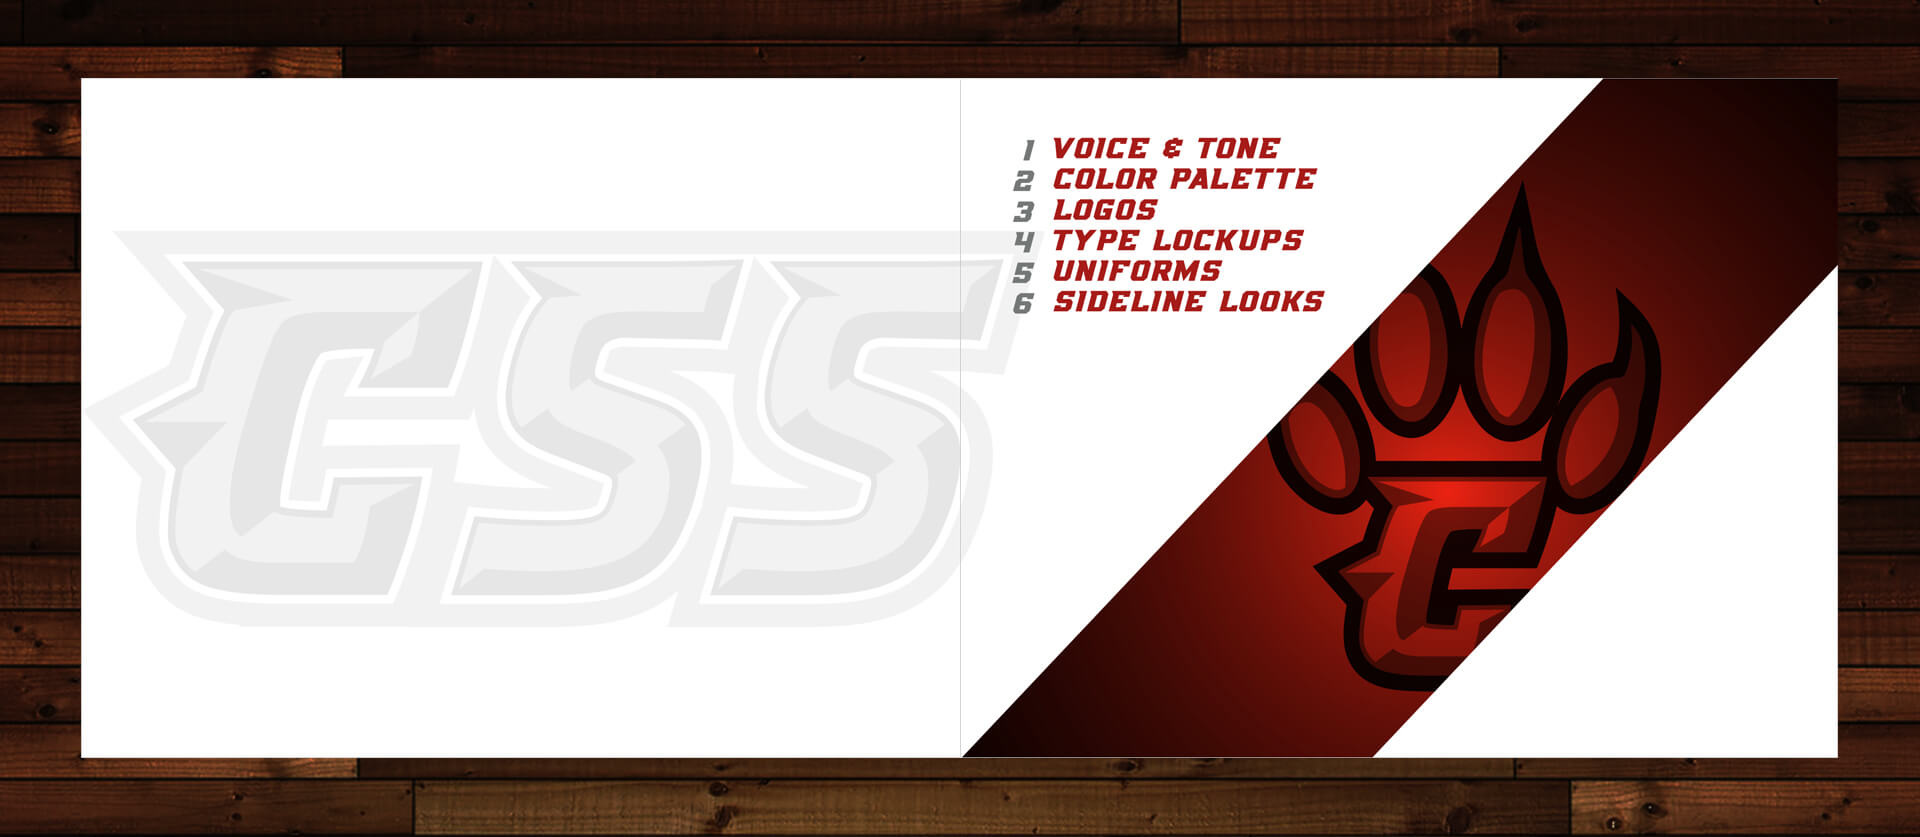 brand guidelines for sports logo of the conrad red wolves